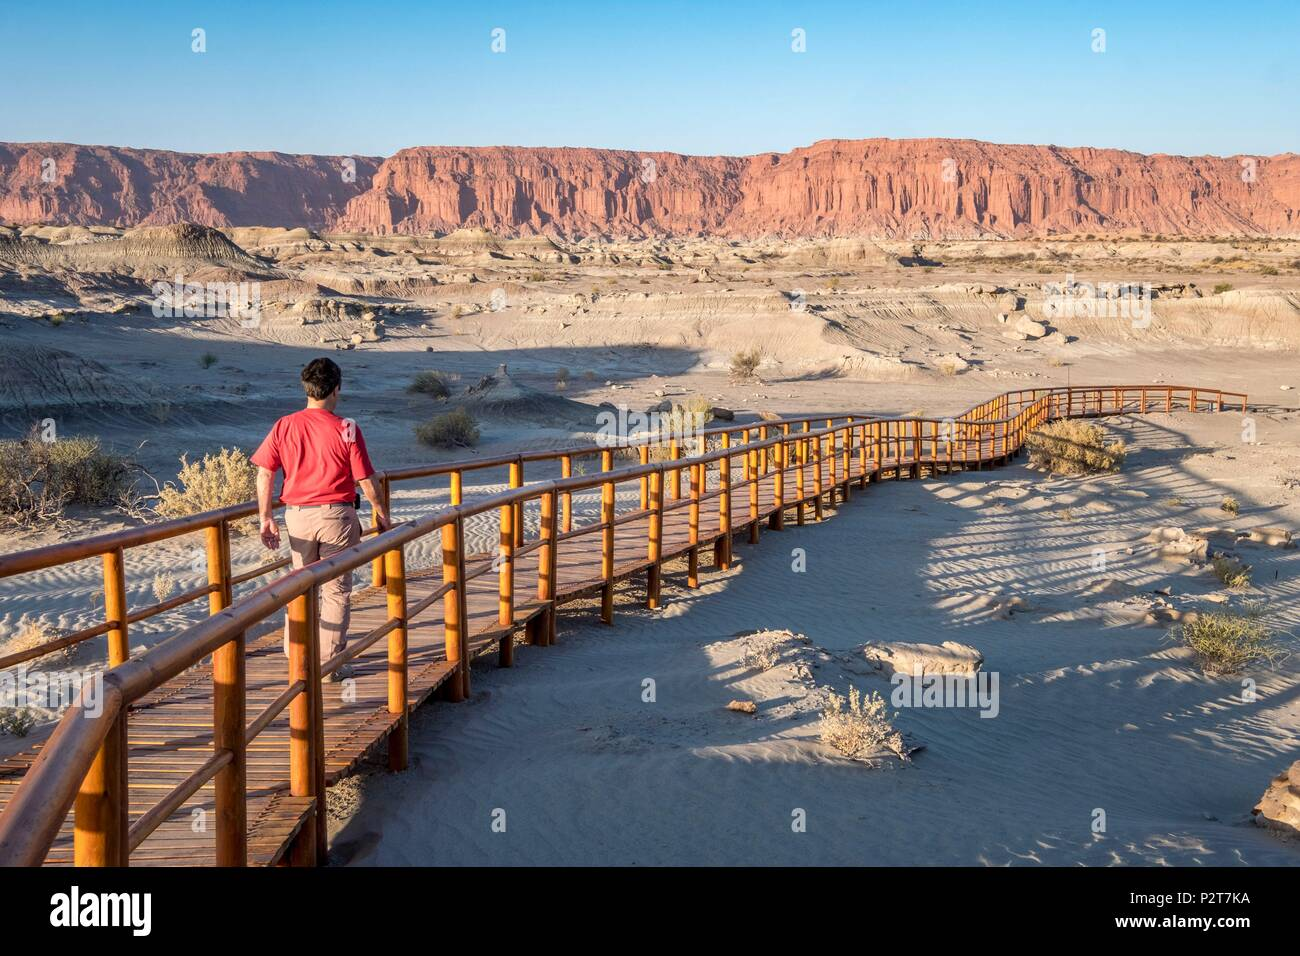 Argentina, San Juan province, Parque Ischigualasto listed as World Heritage by UNESCO, Dr William Sill museum Stock Photo